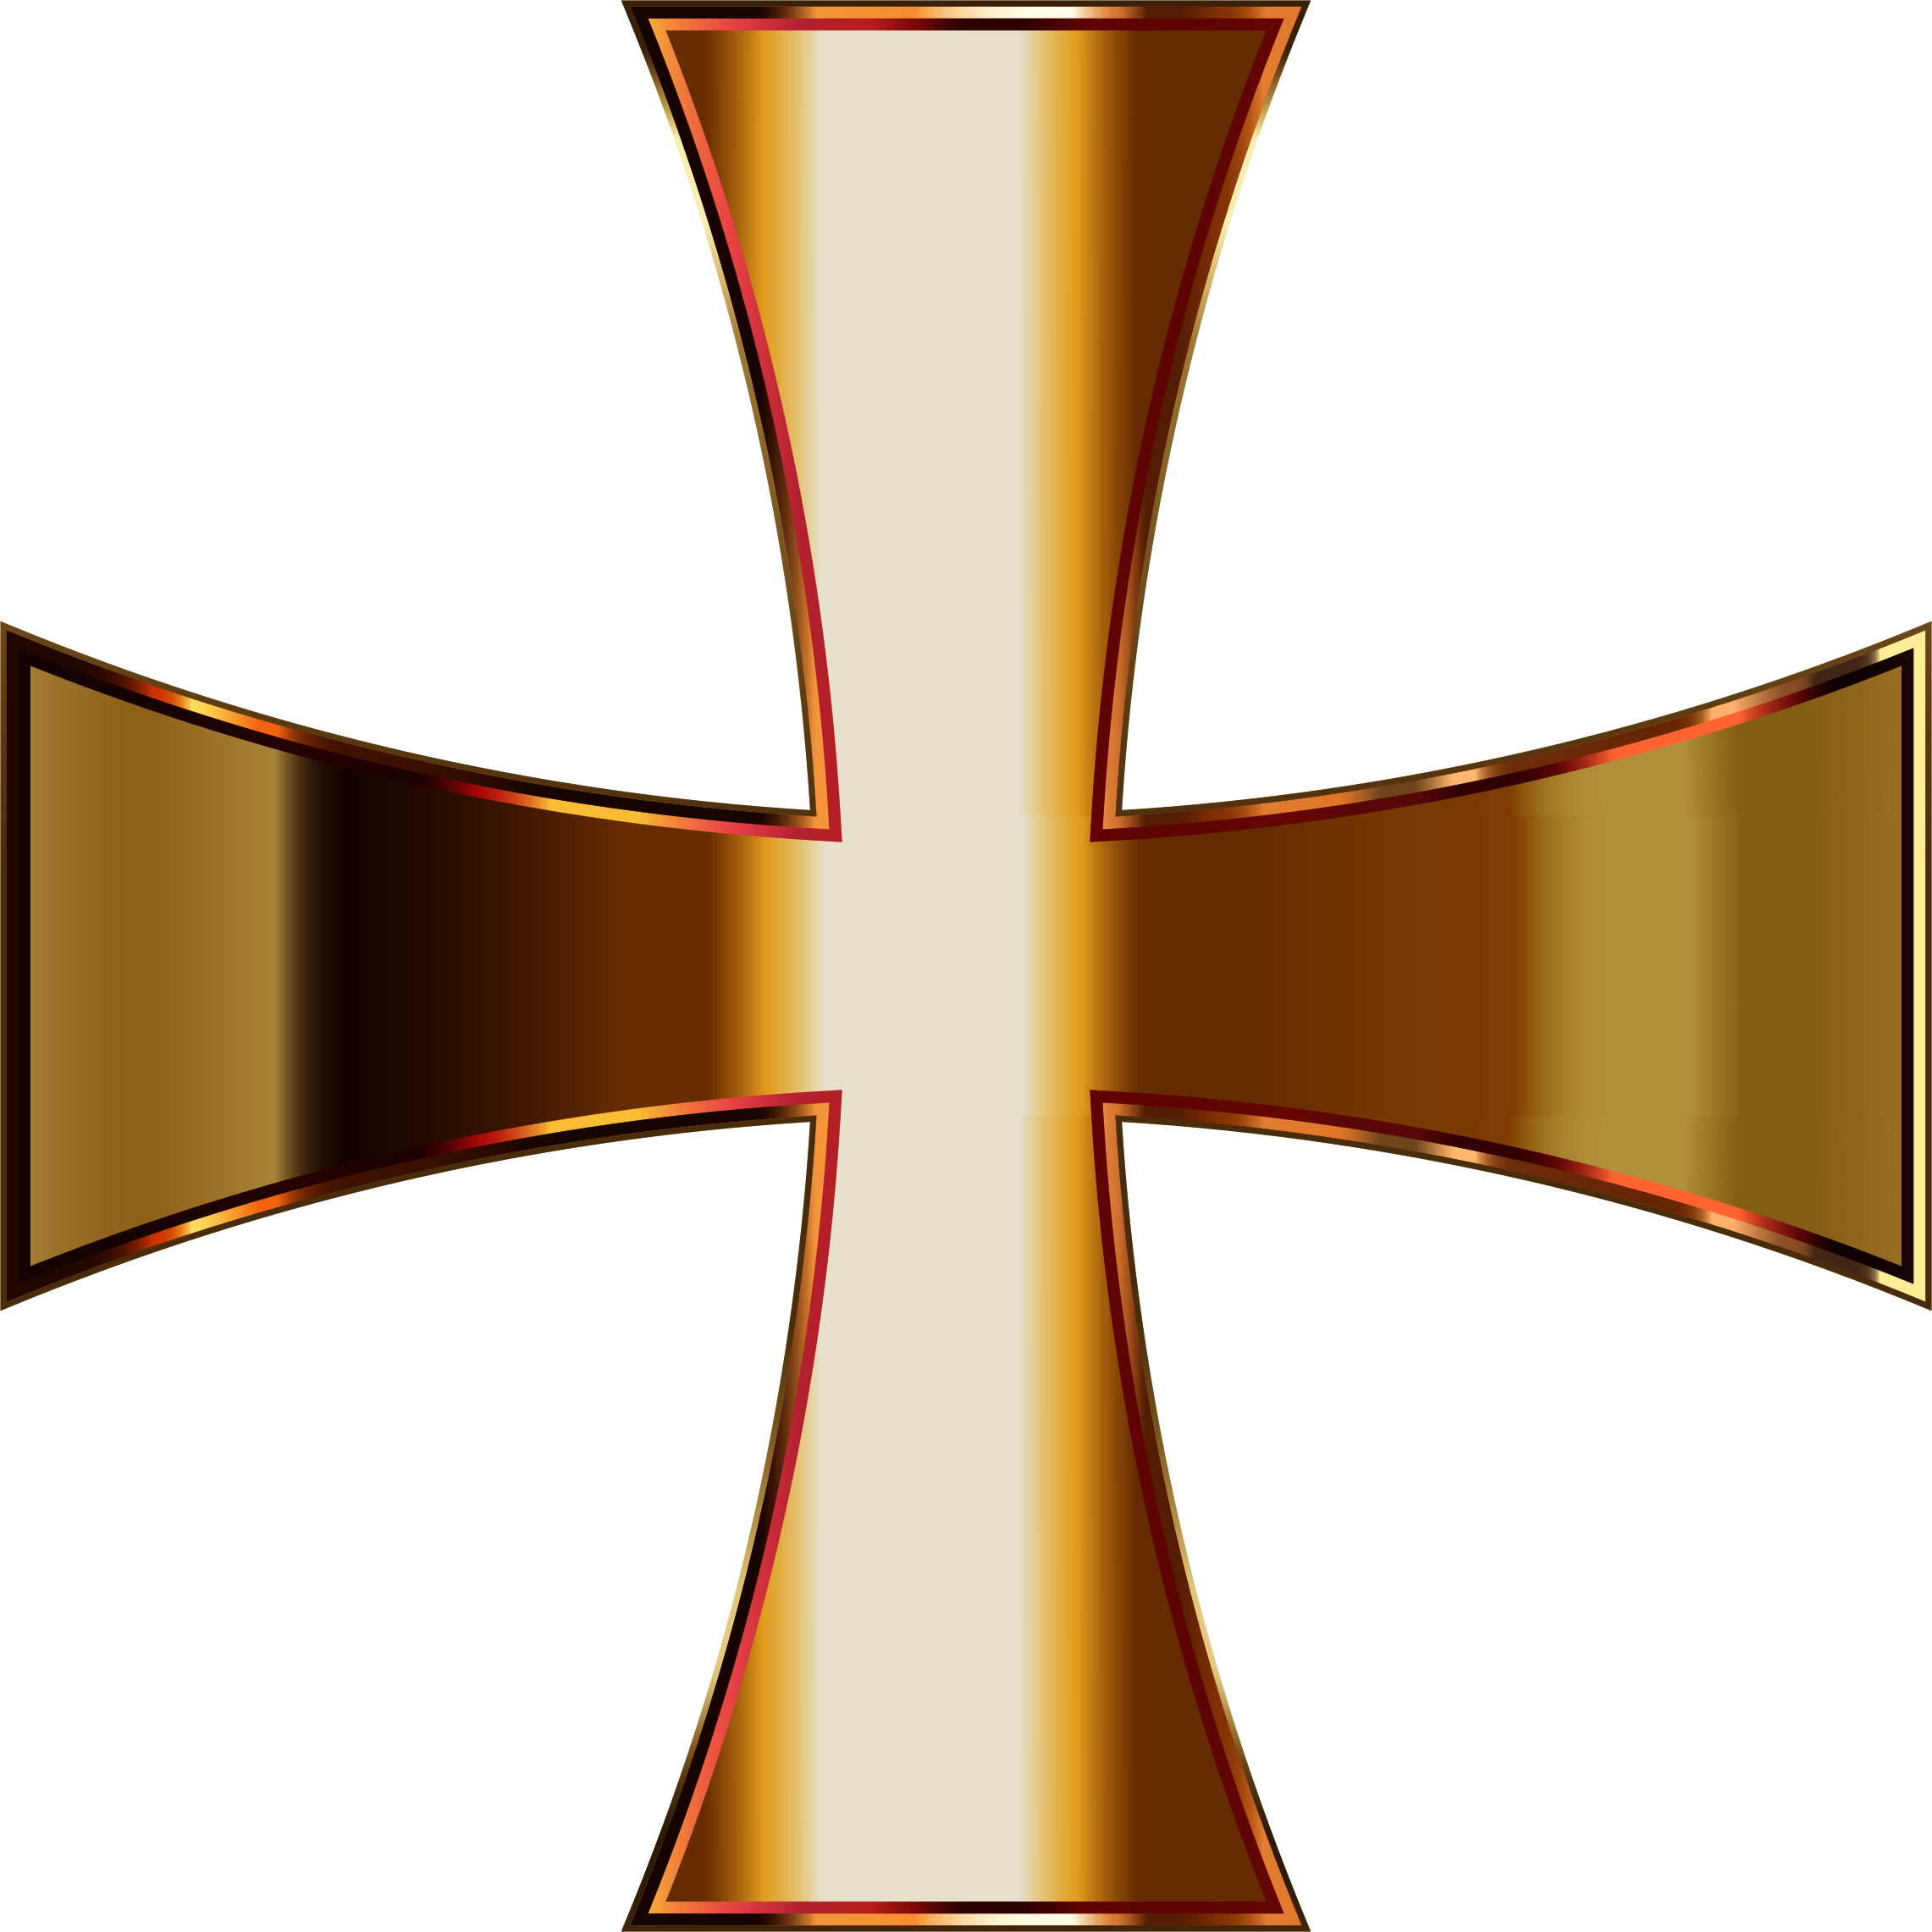 Gold Maltese Cross Enhanced Contrast No Background by GDJ